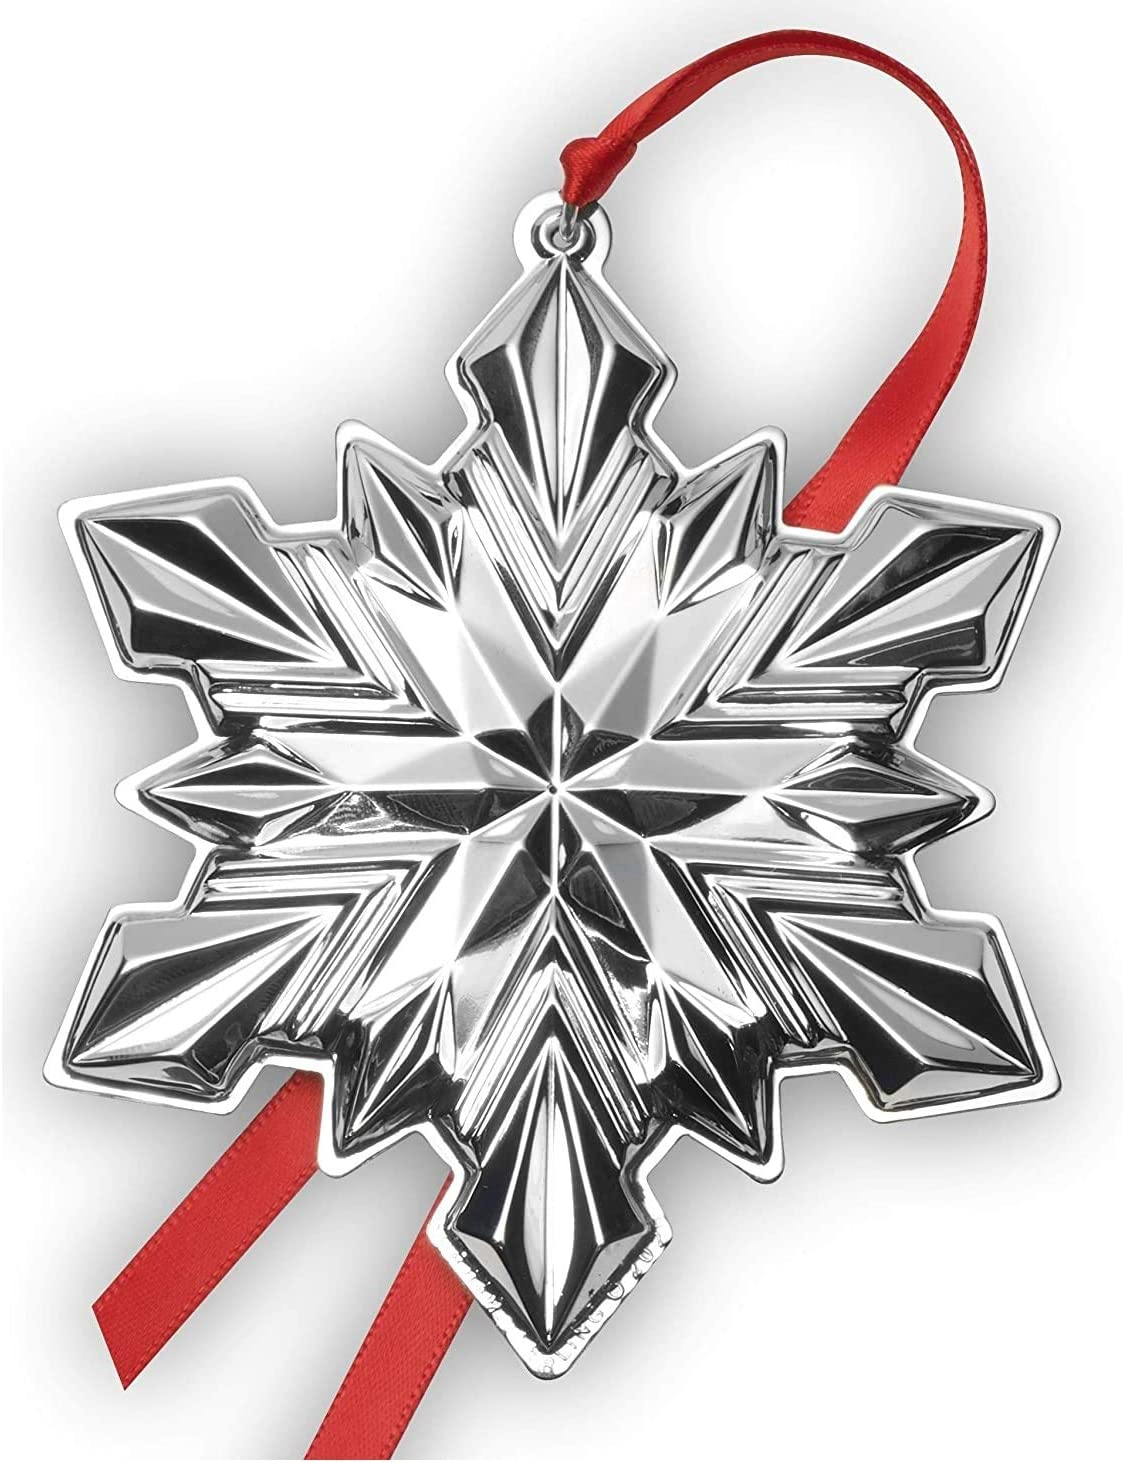 Lifetime Brands Gorham 5254043 Annual Sterling Silver Snowflake 2020 Holiday Ornament 51st Edition Metal Furniture Decor